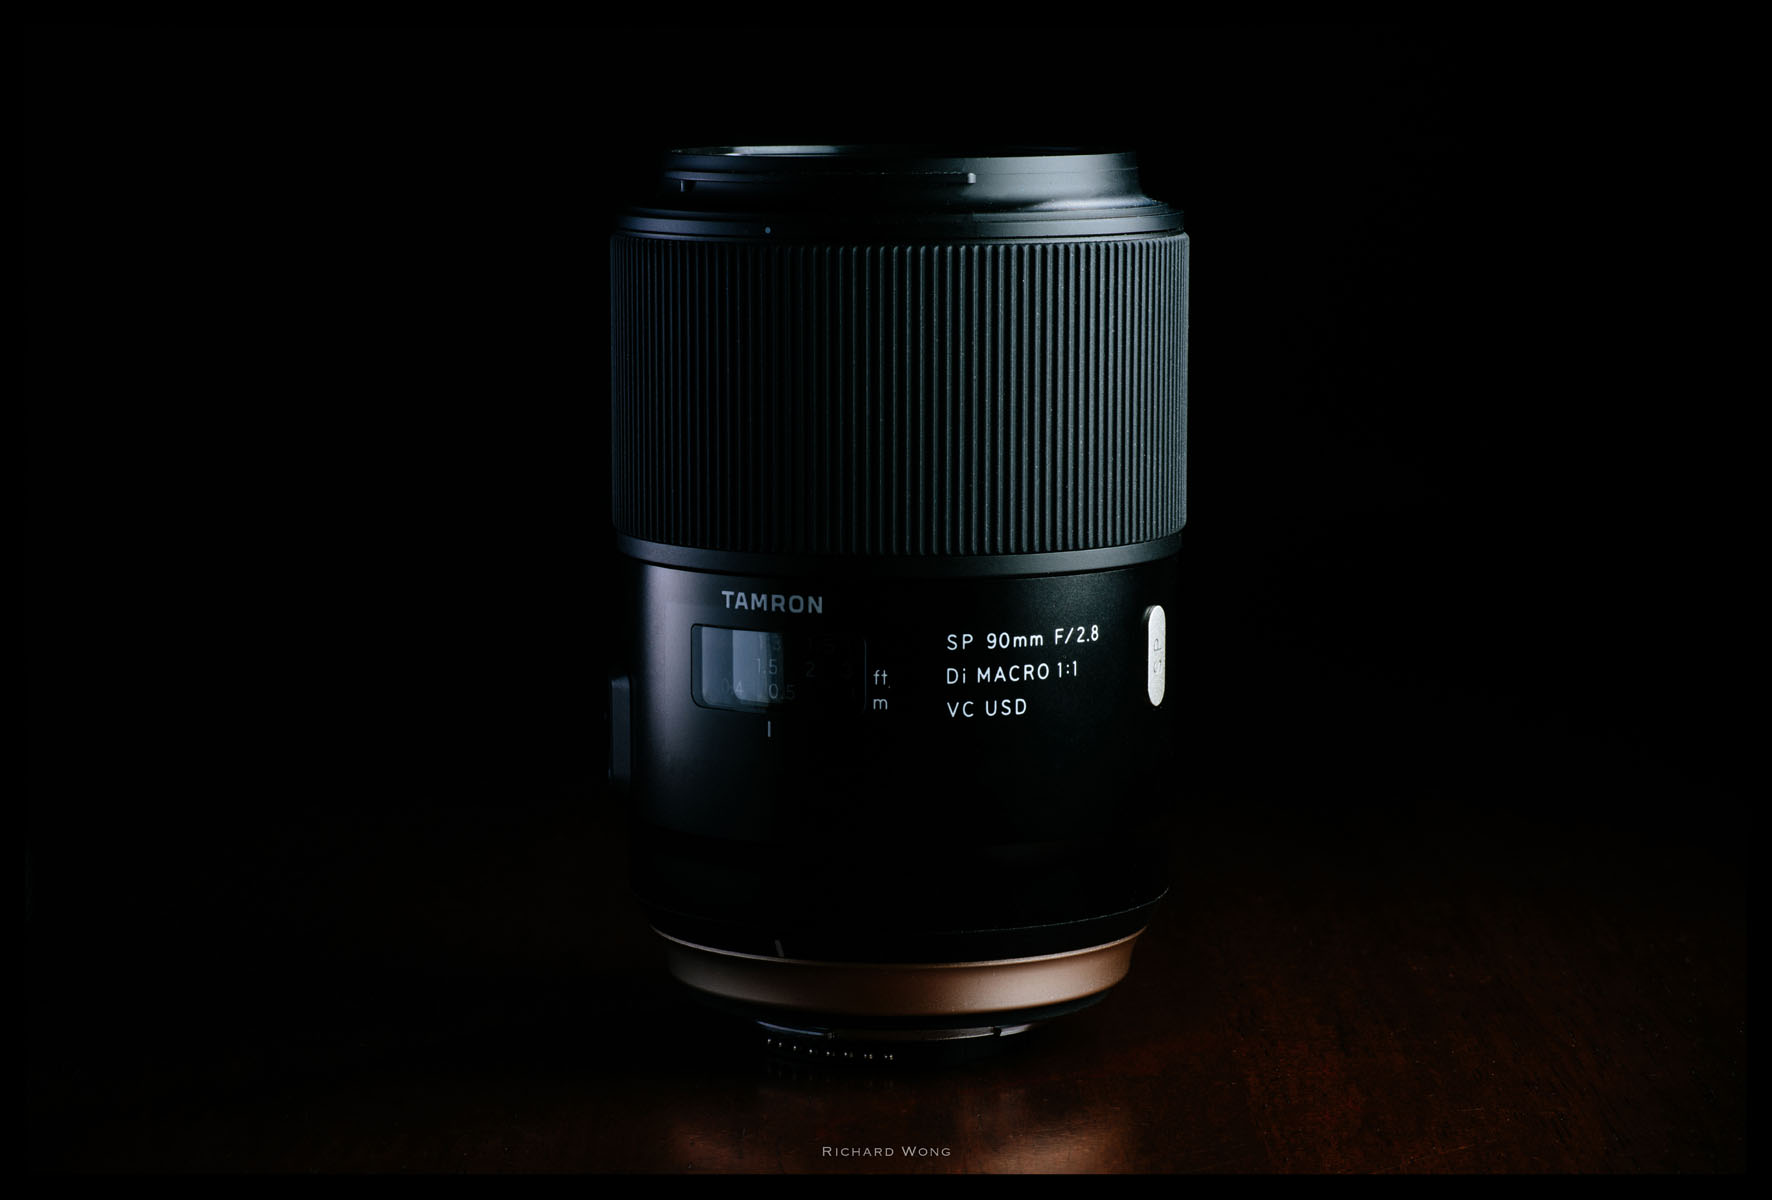 Tamron-SP-90mm-28-review-01